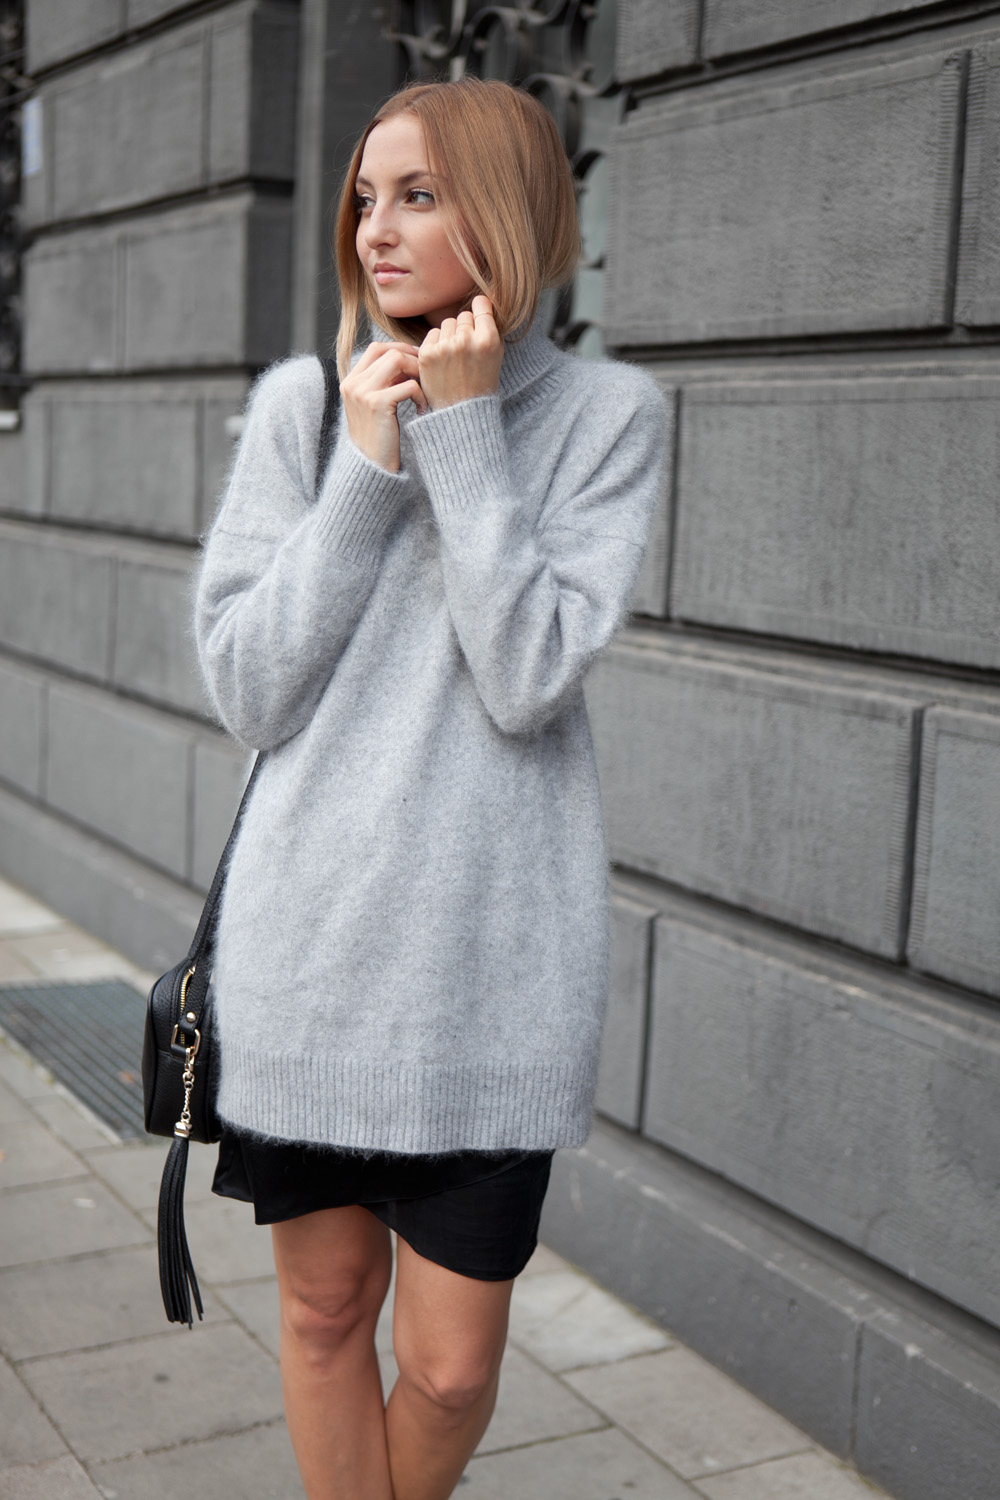 Jess A. is wearing a grey fluffy long sweater from Jessica Buurman